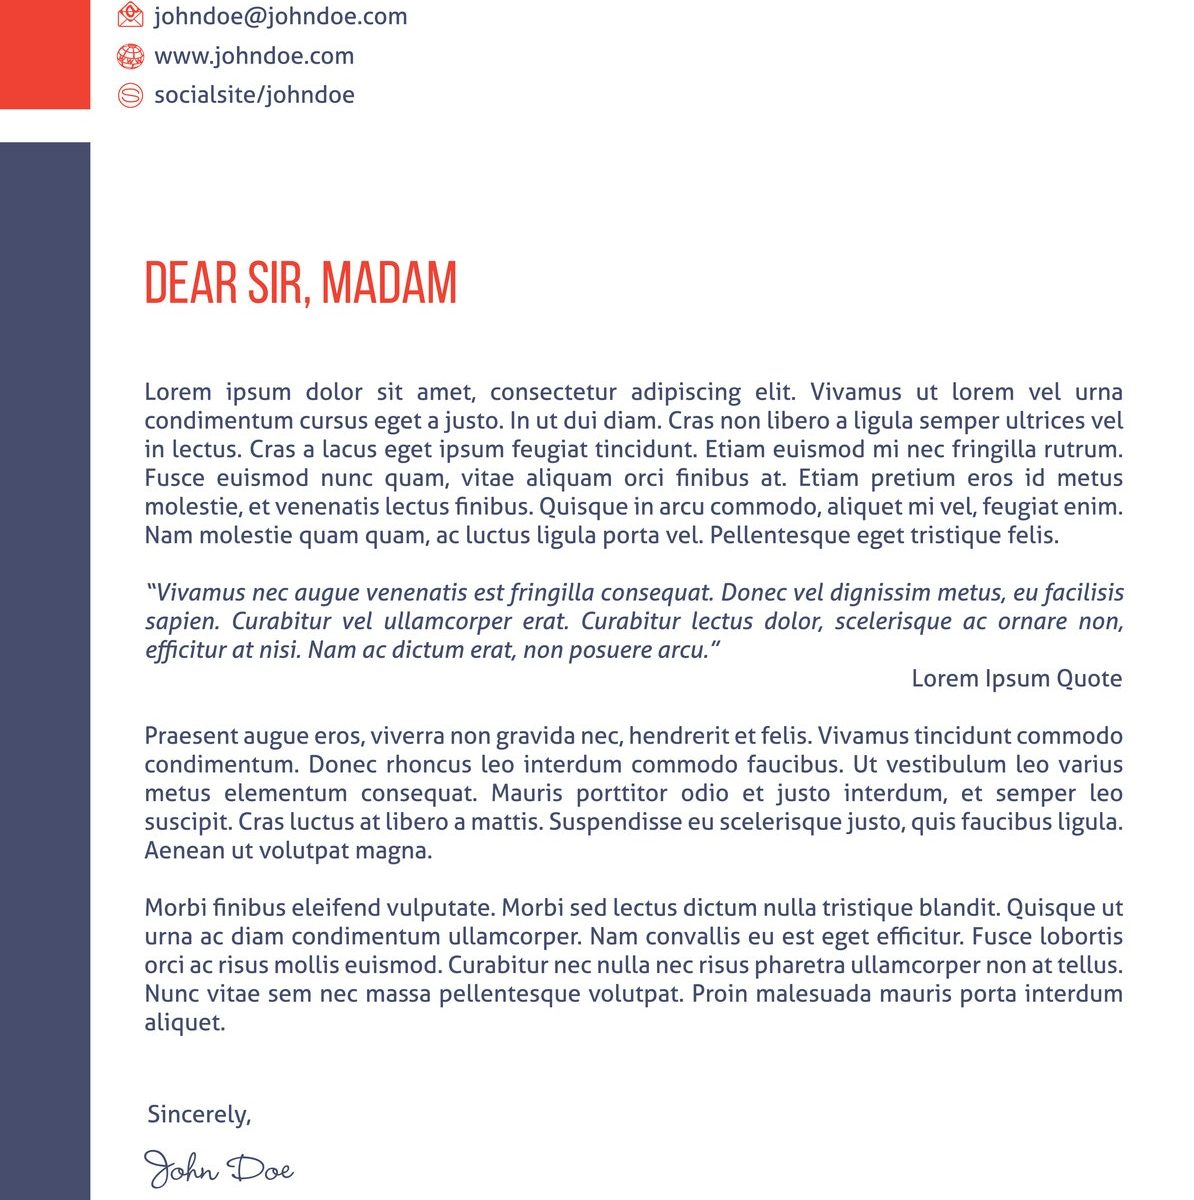 Postdoc Cover Letter Template - Resume Cover Letter Template Free Cover Letter Post Doc 29 Modern